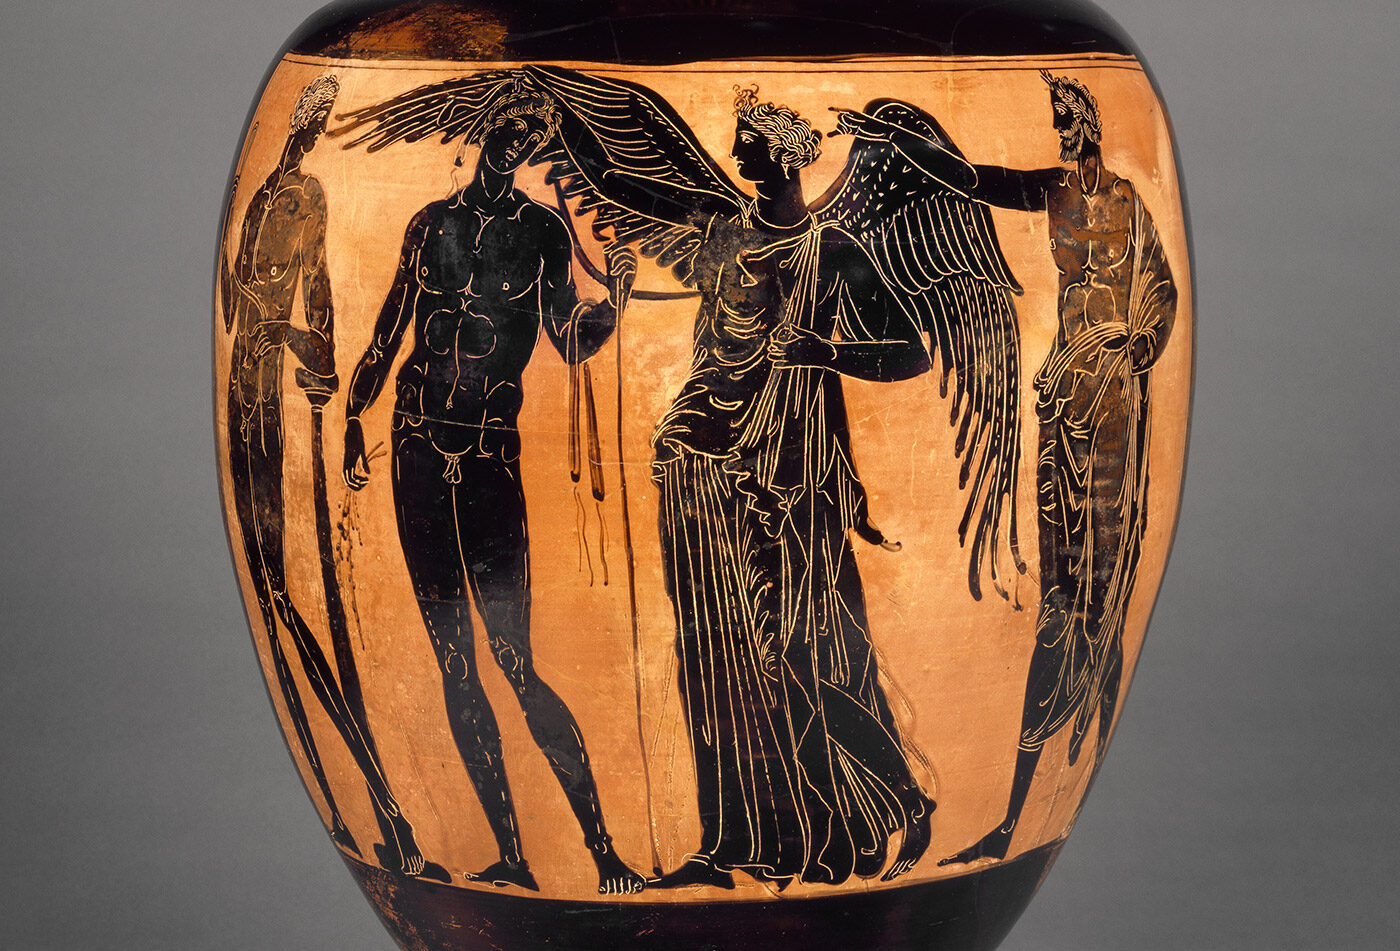 The Getty Villa Guide to the Ancient Olympics